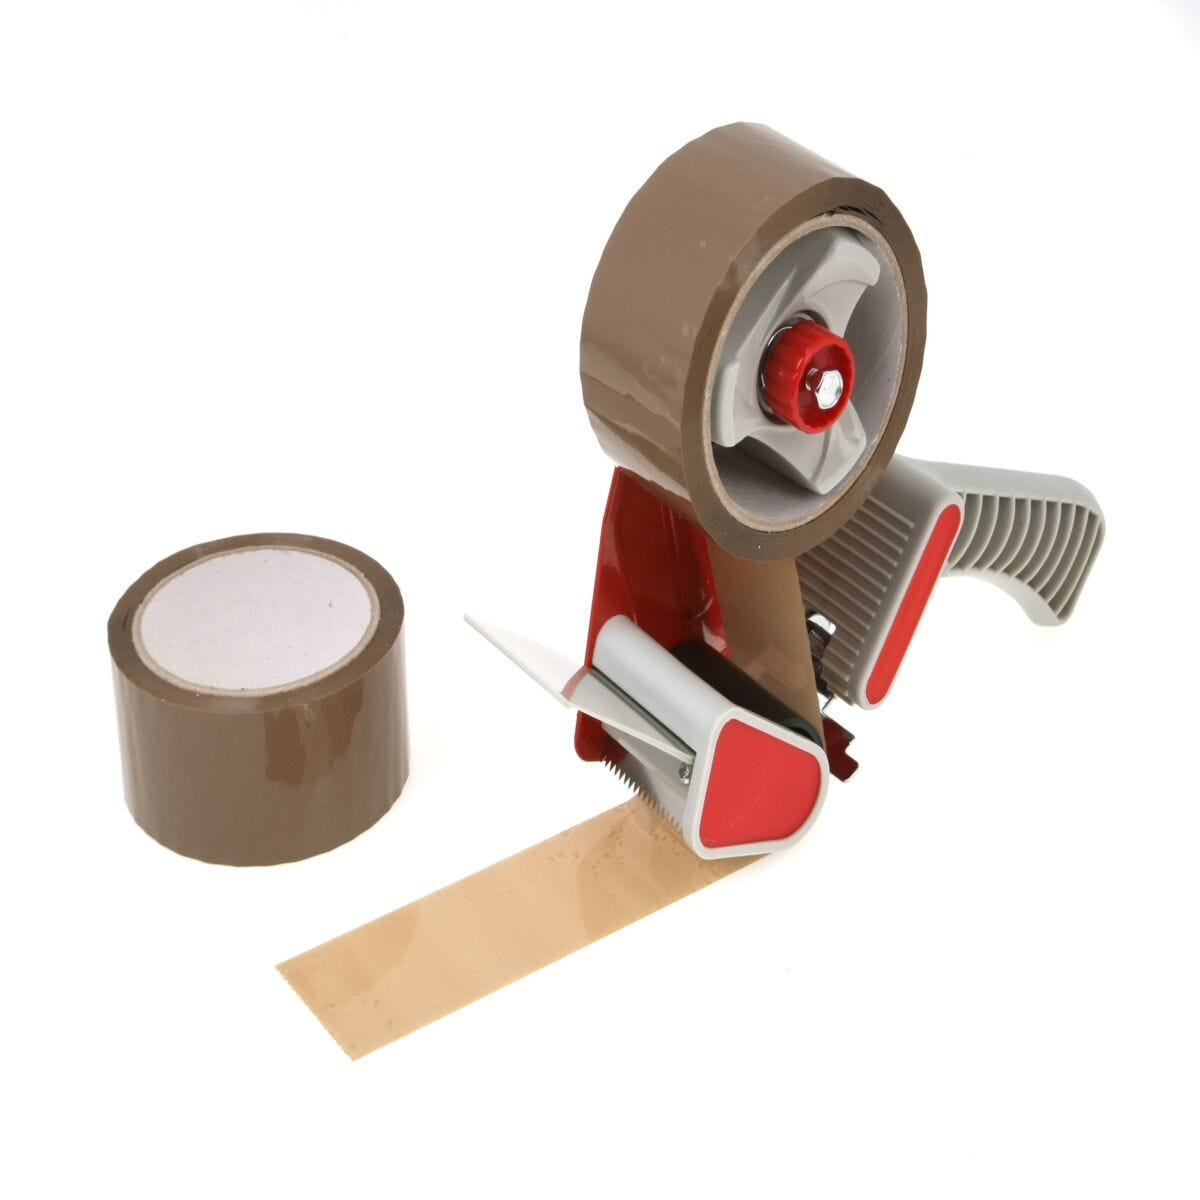 Ryman Parcel Tape Dispenser and Pack of 2 Tapes 48mm x 50m